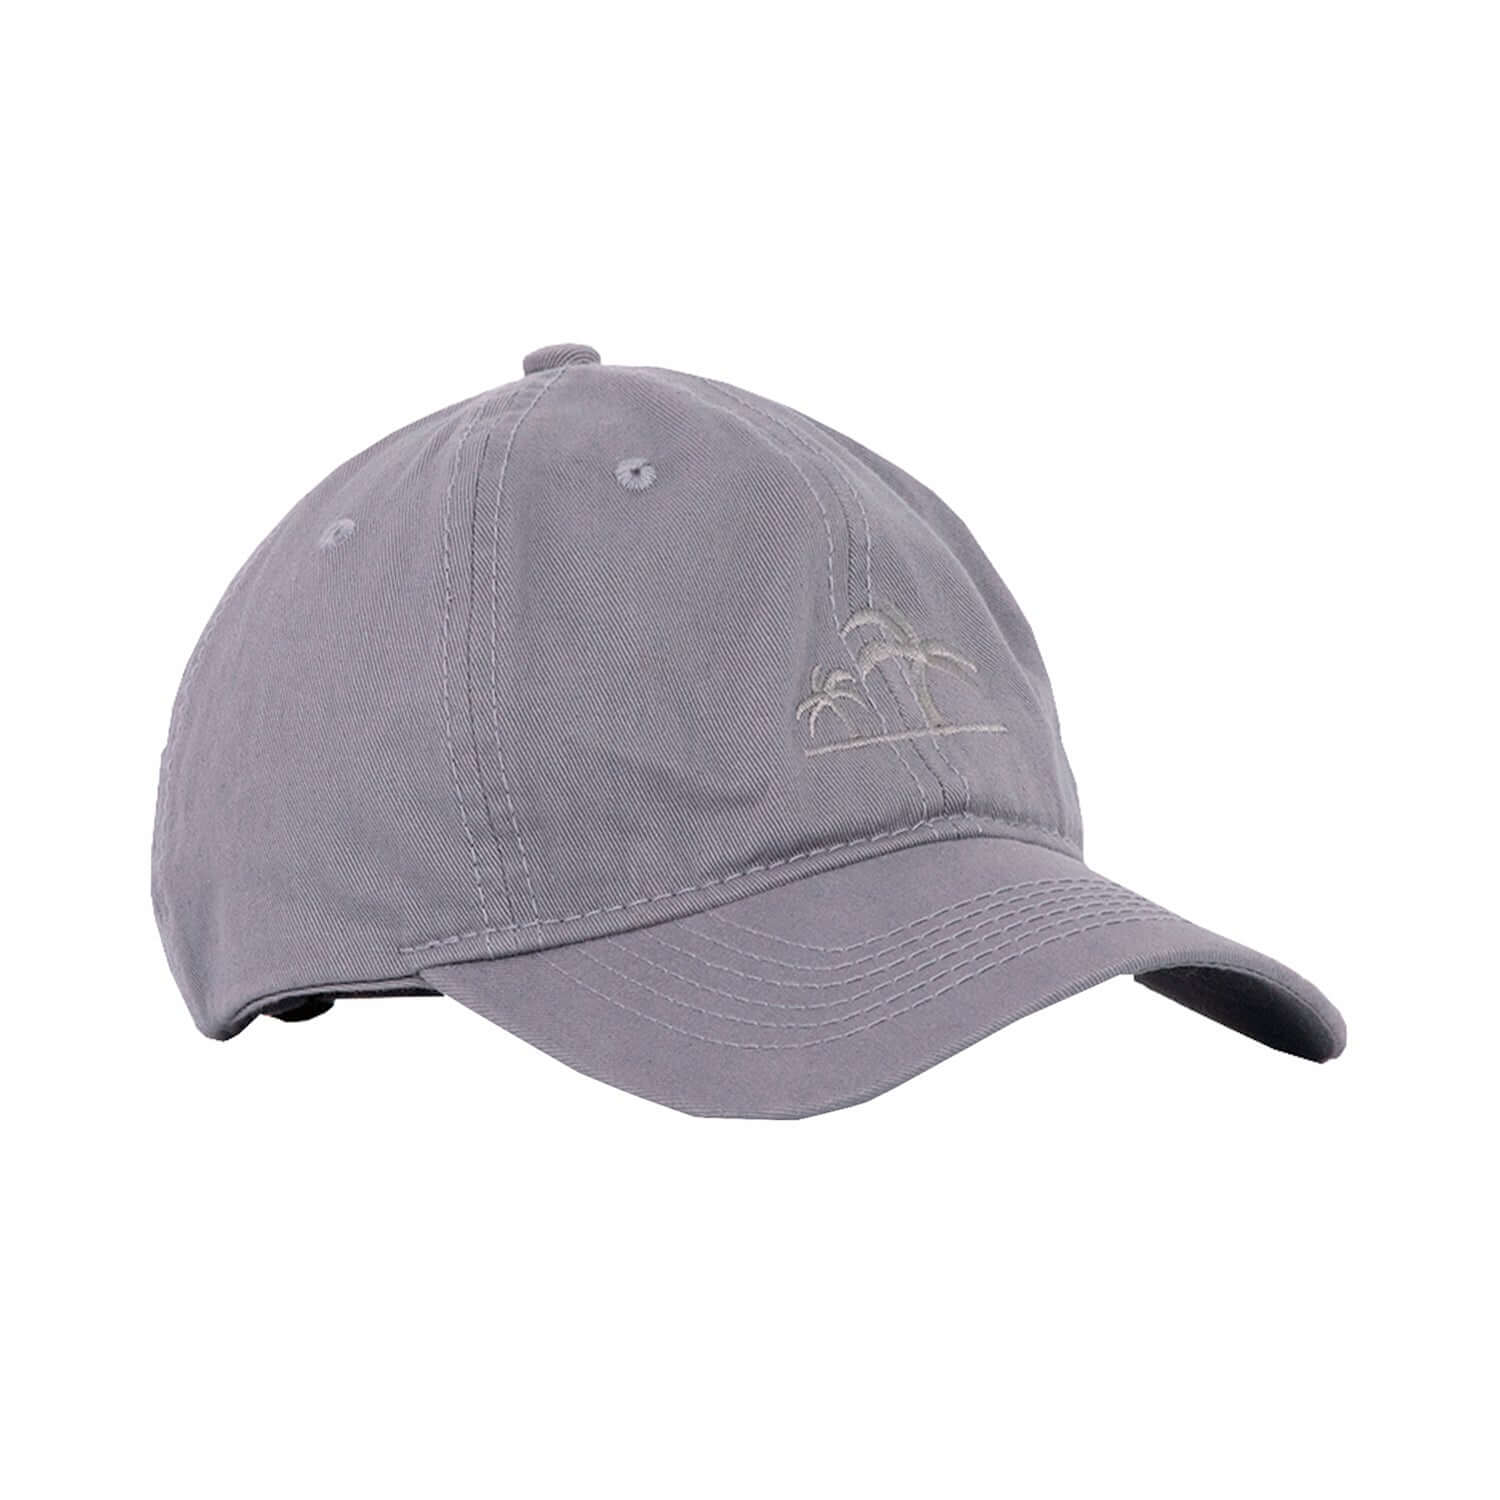 GRAY HAT - Clorofila Sea Wear